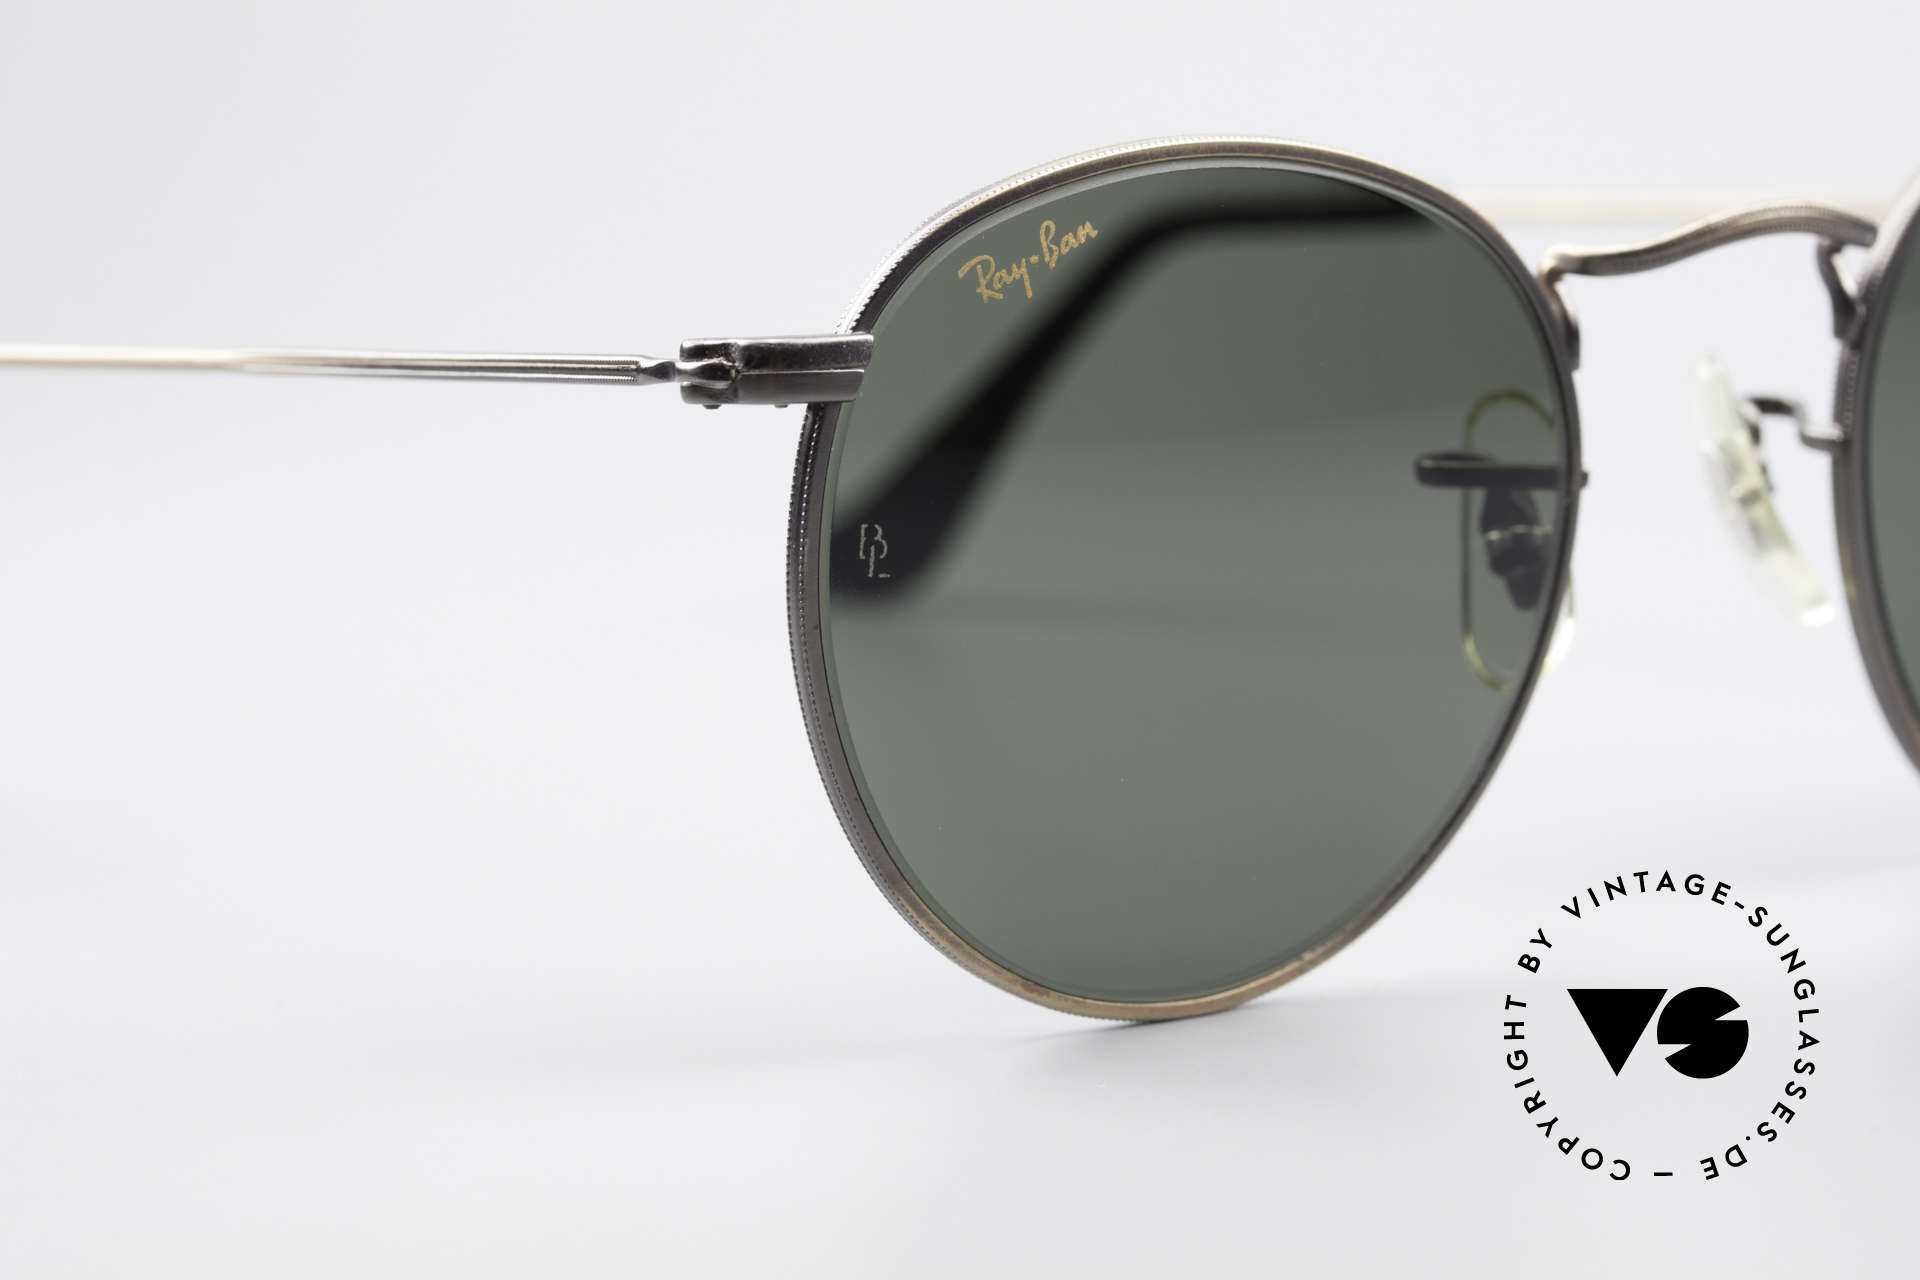 Ray Ban Round Metal 47 Small Round Vintage Shades, unworn Bausch&Lomb sunglasses + an old B&L case, Made for Men and Women